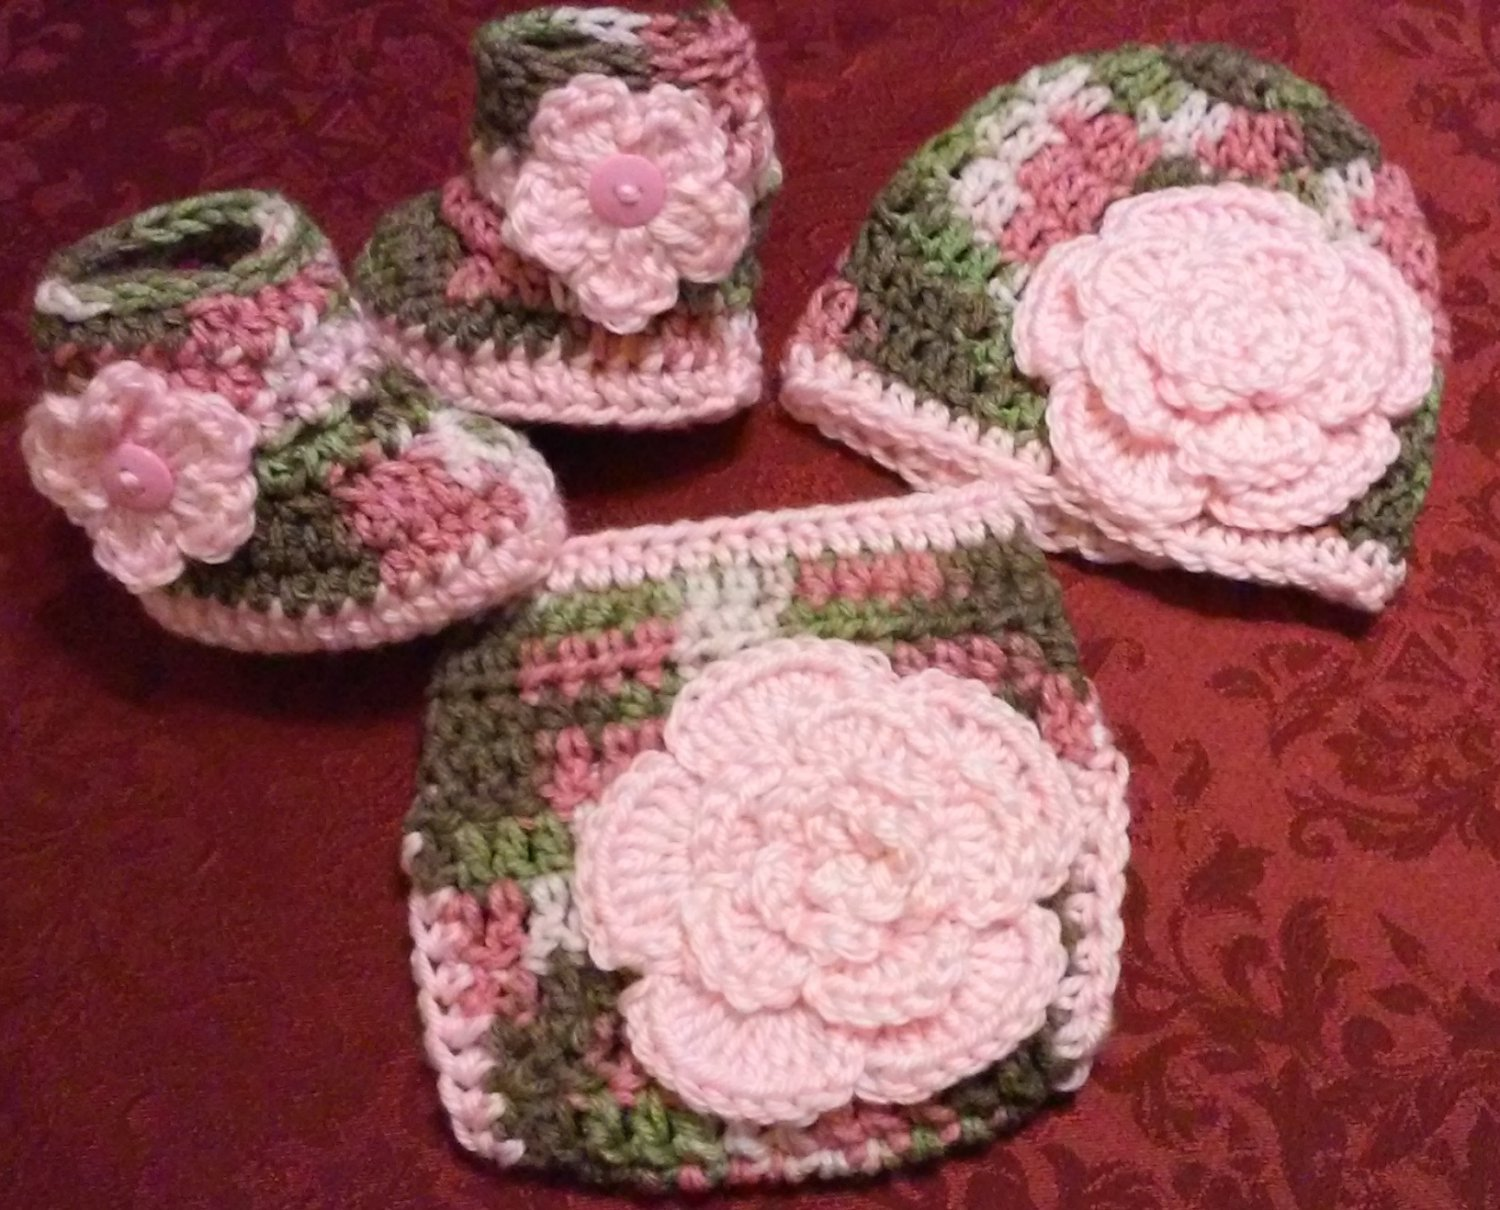 Crochet Pink Camo and Floral Diaper Cover Set in Baby Pink with Hat, Booties Newborn 0-3 Months